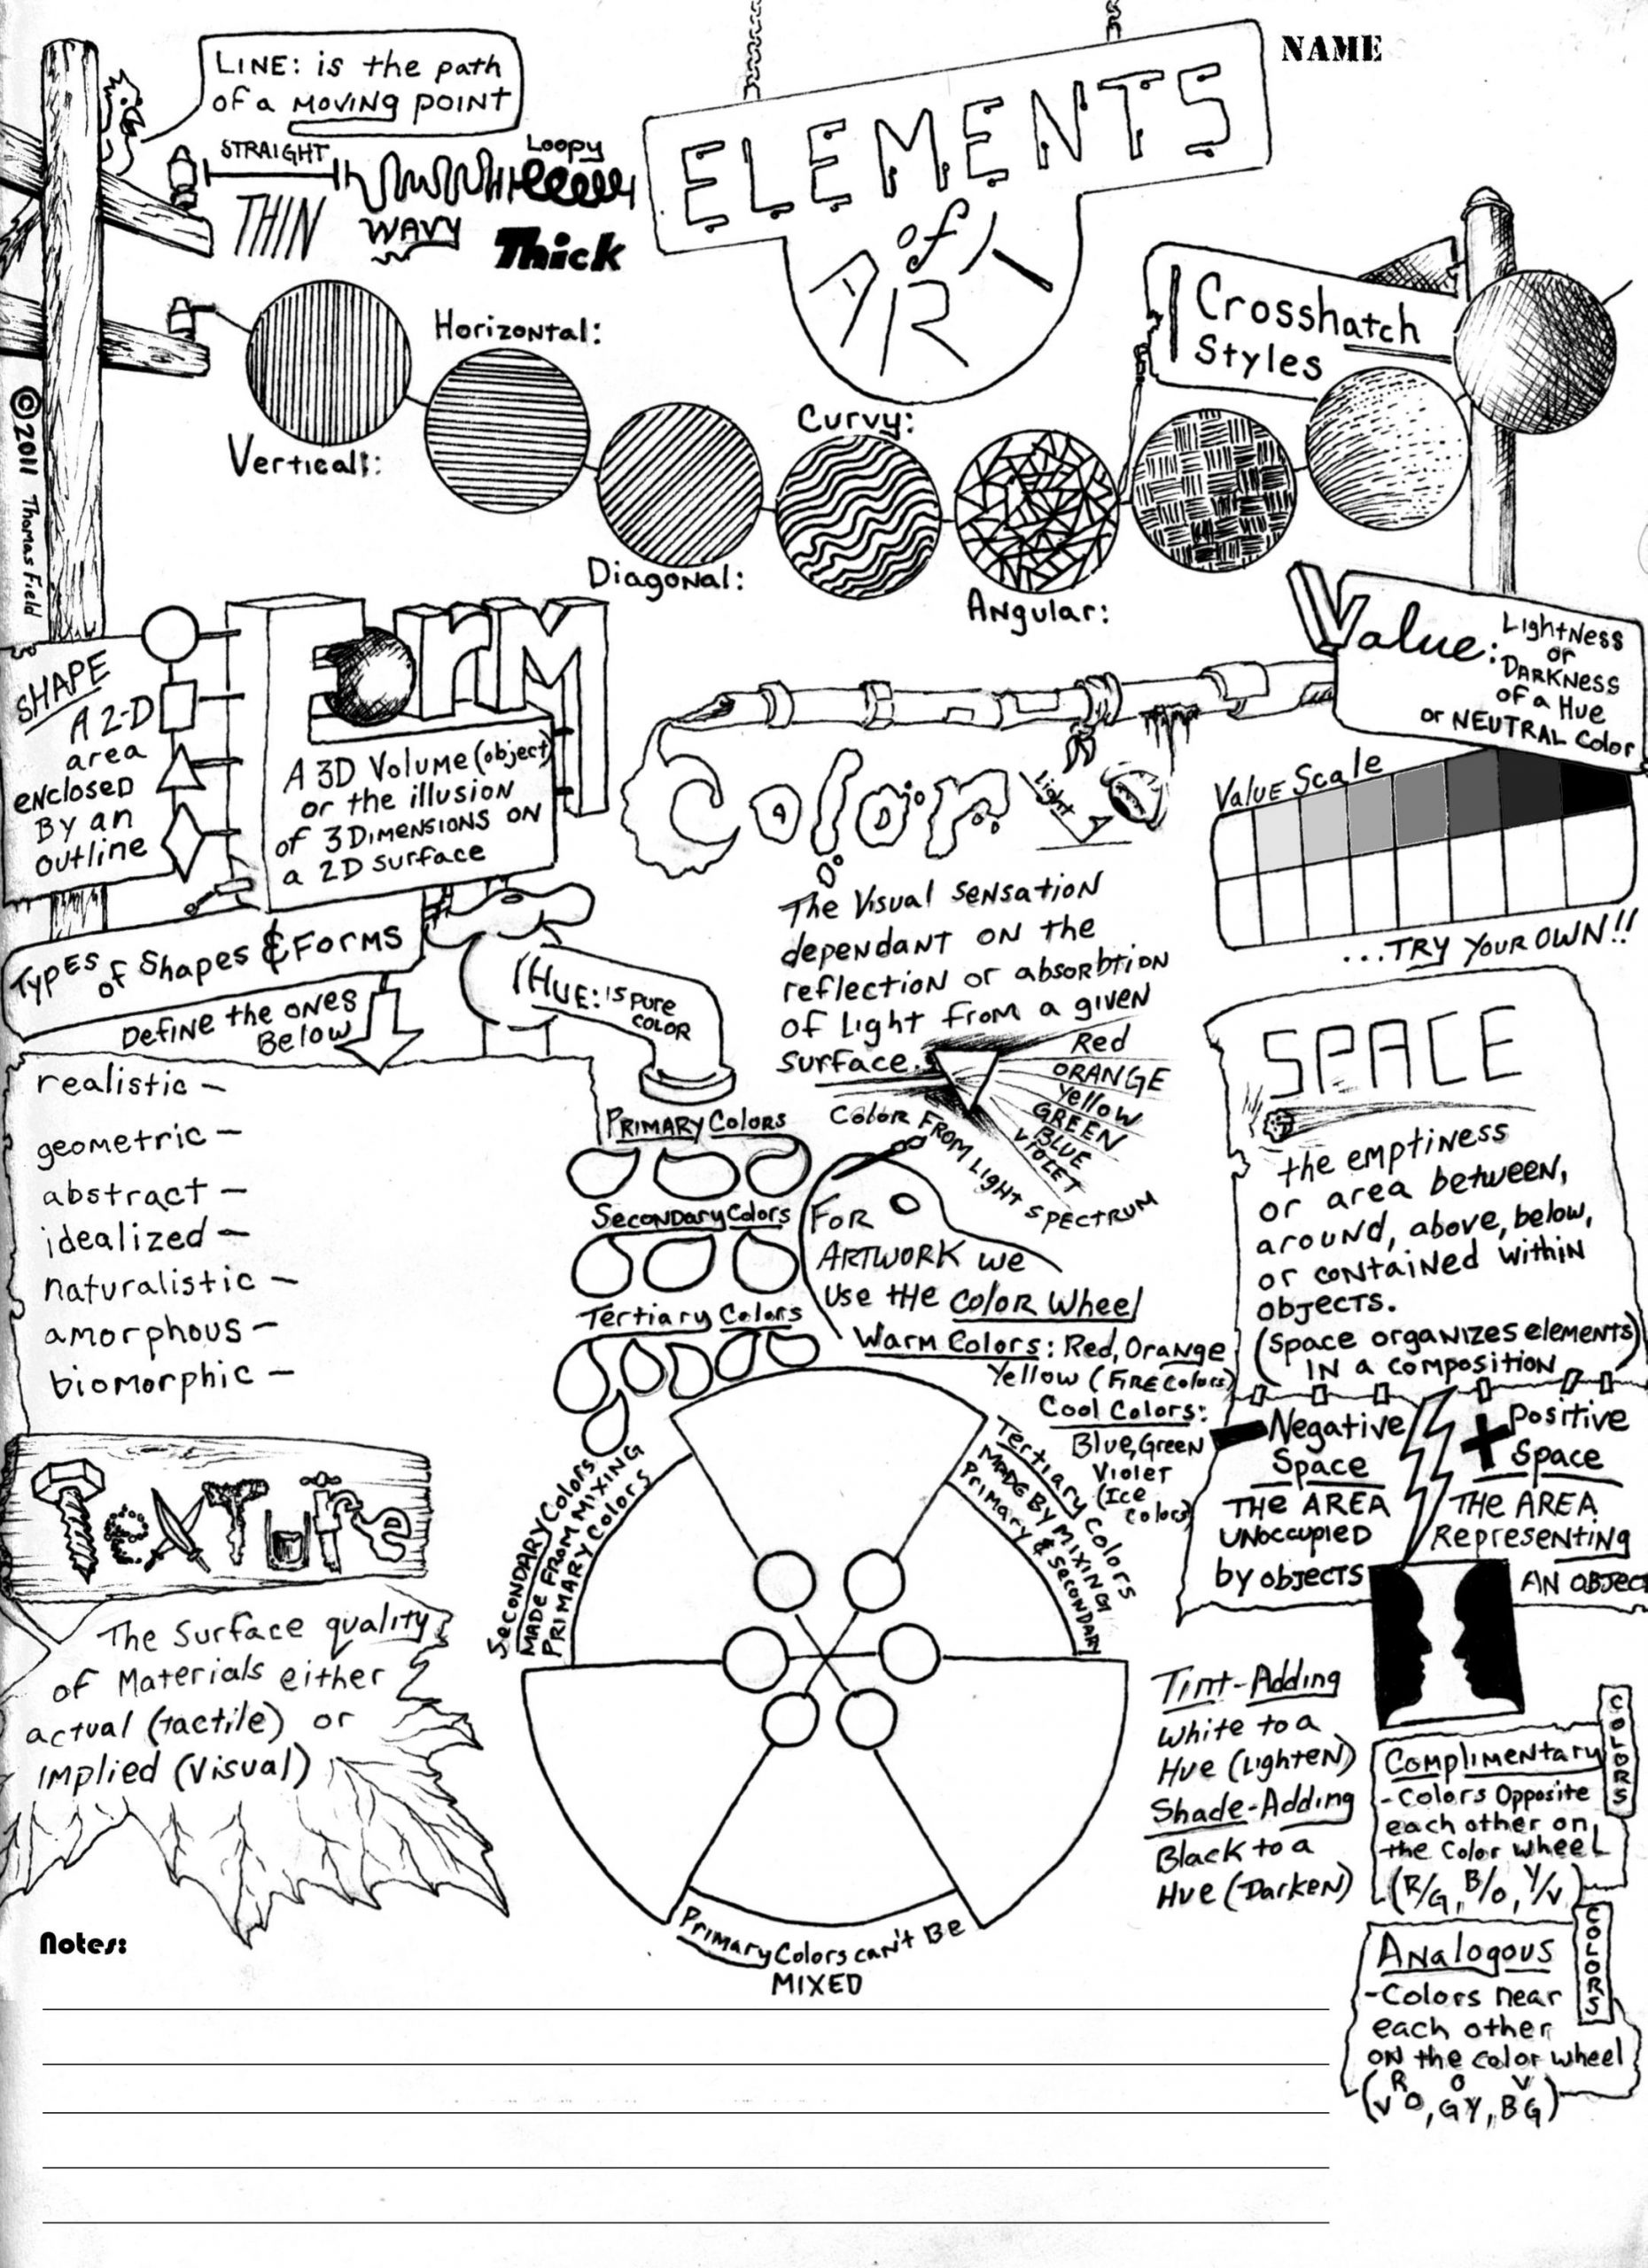 Middle School Art Worksheets Elements Of Art Worksheet Elements Of Art